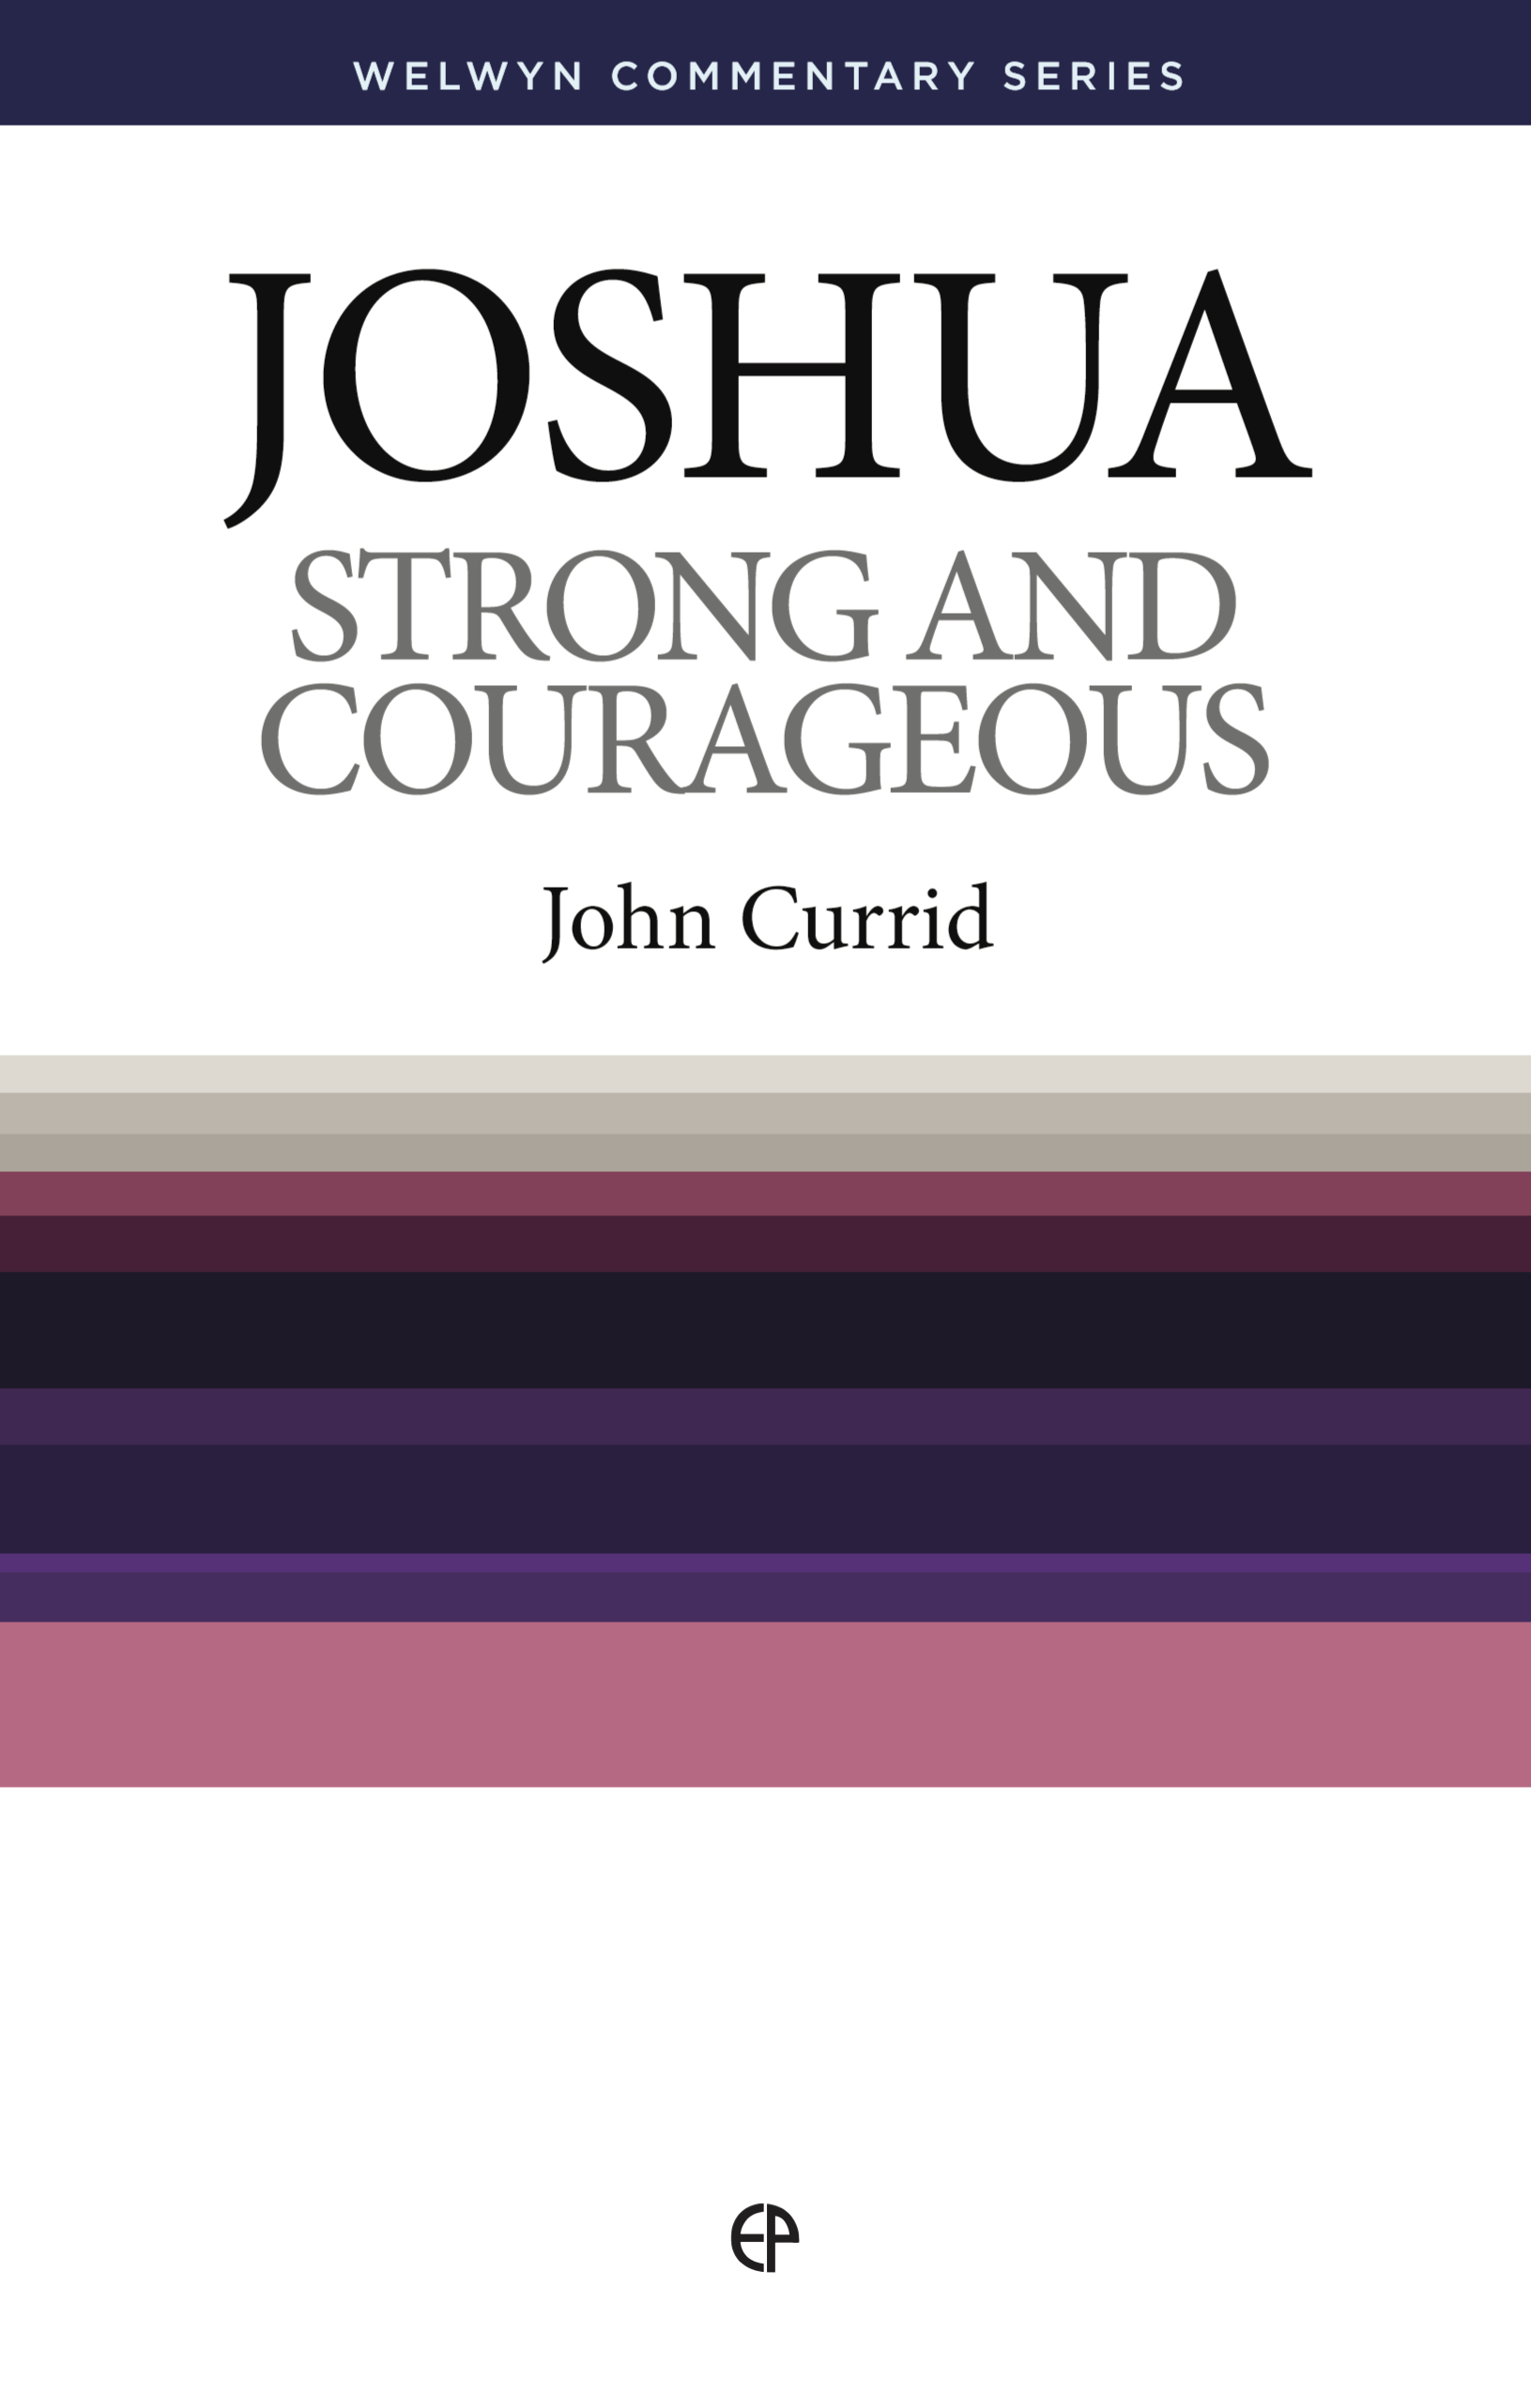 Welwyn Commentary Series - Joshua - Strong And Courageous